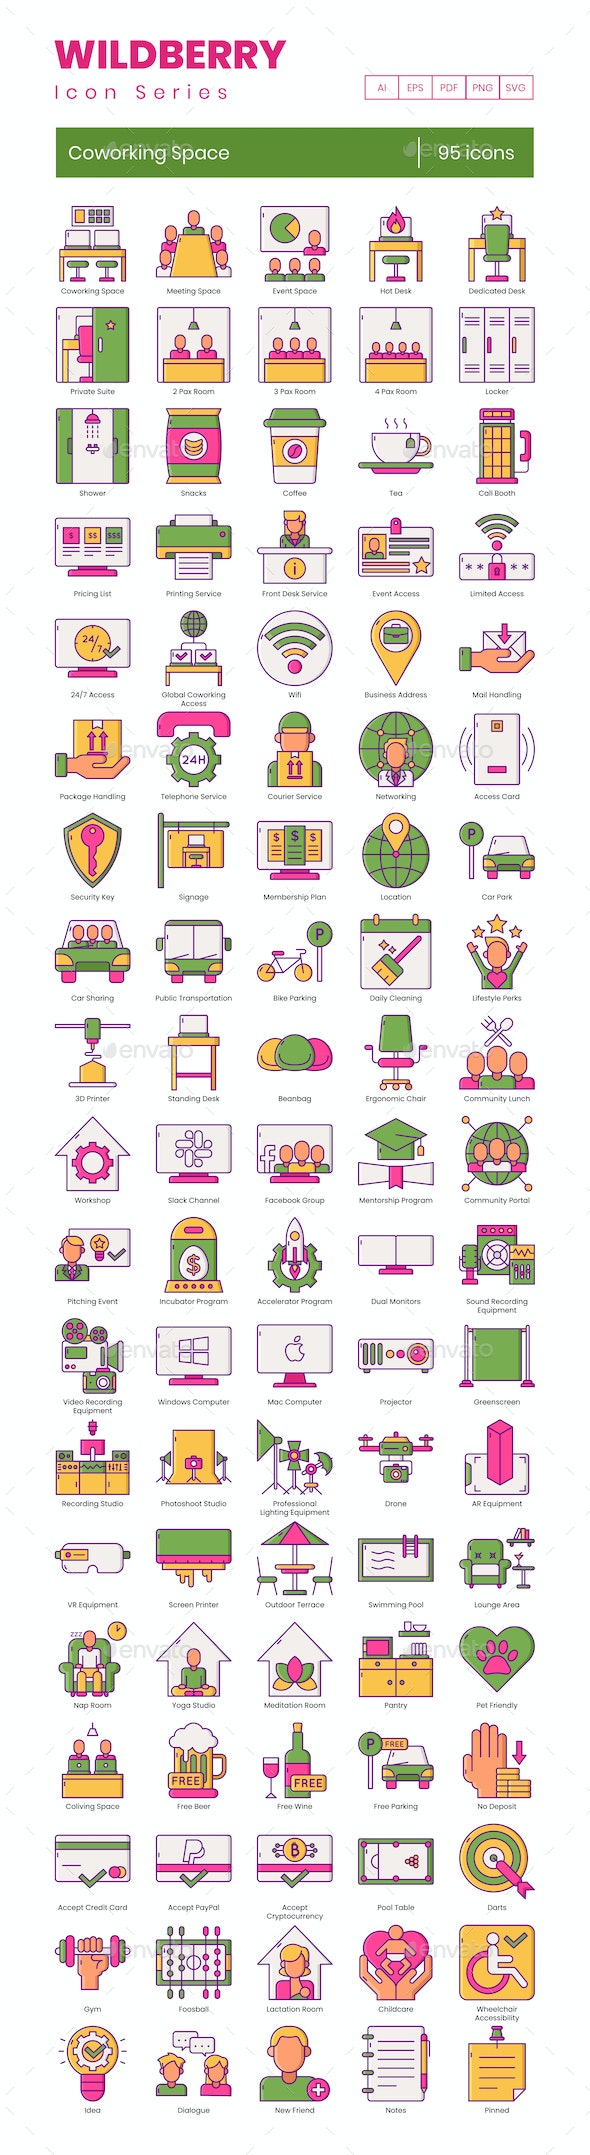 Coworking Space Icons - Wildberry Series - Business Icons